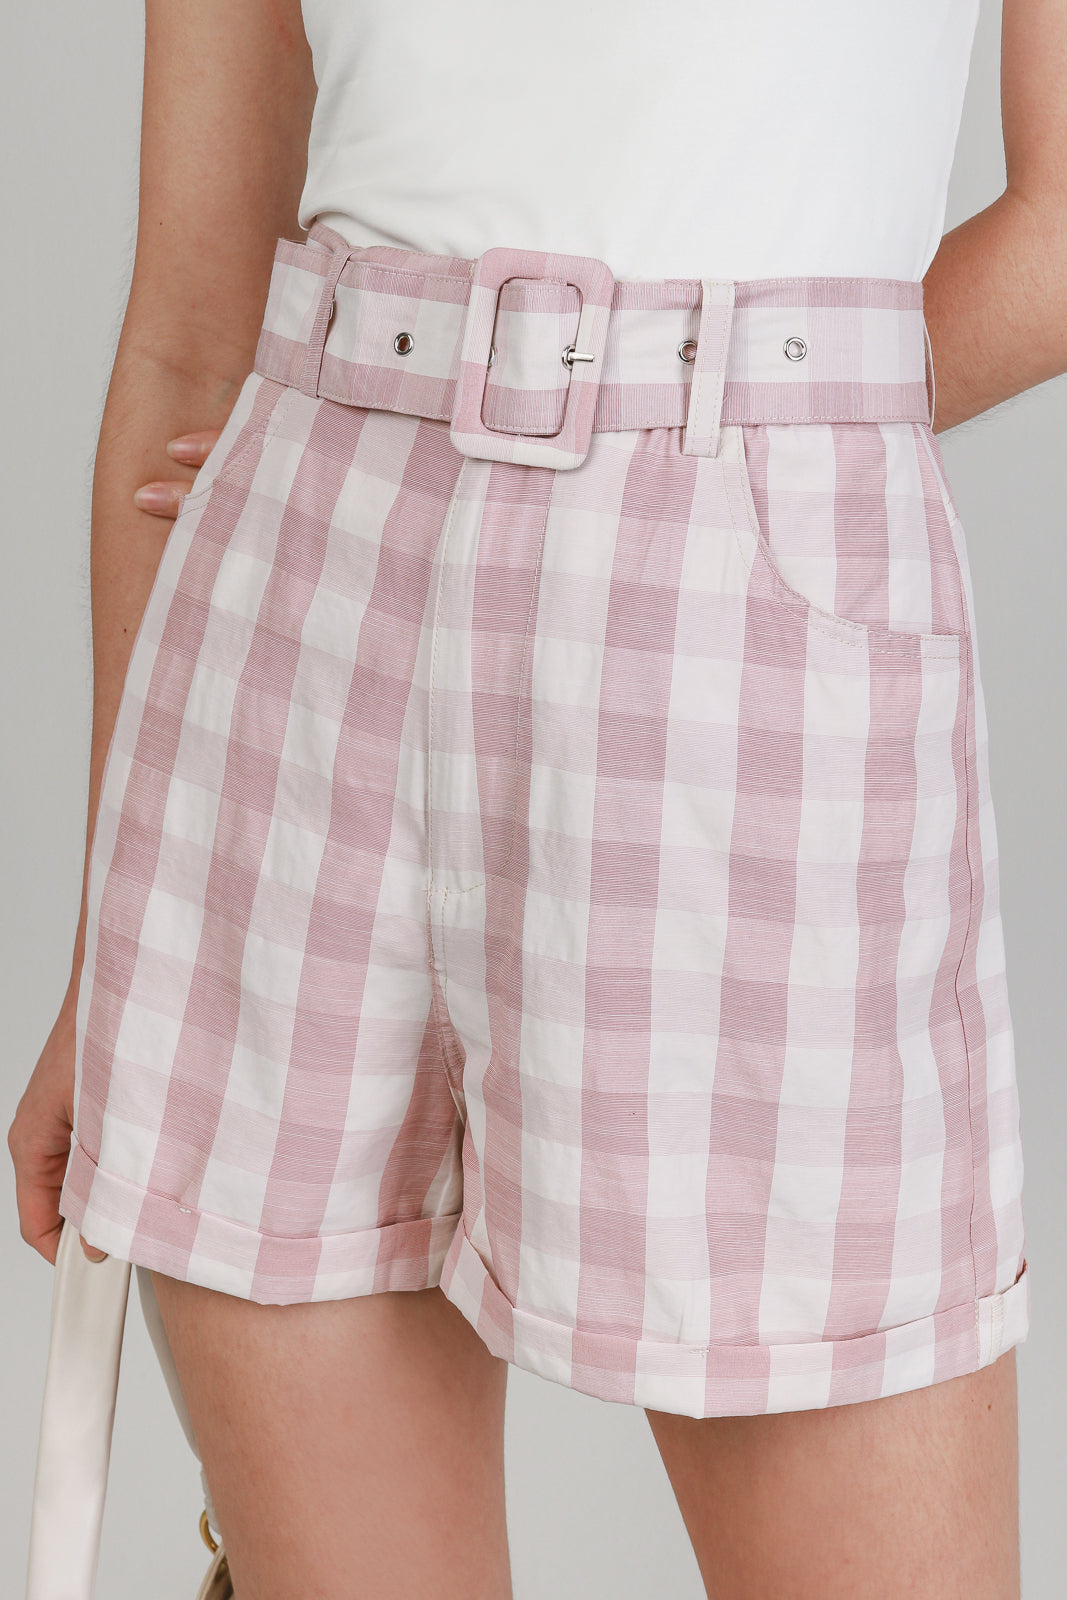 Belted Gingham Shorts in Baby Pink